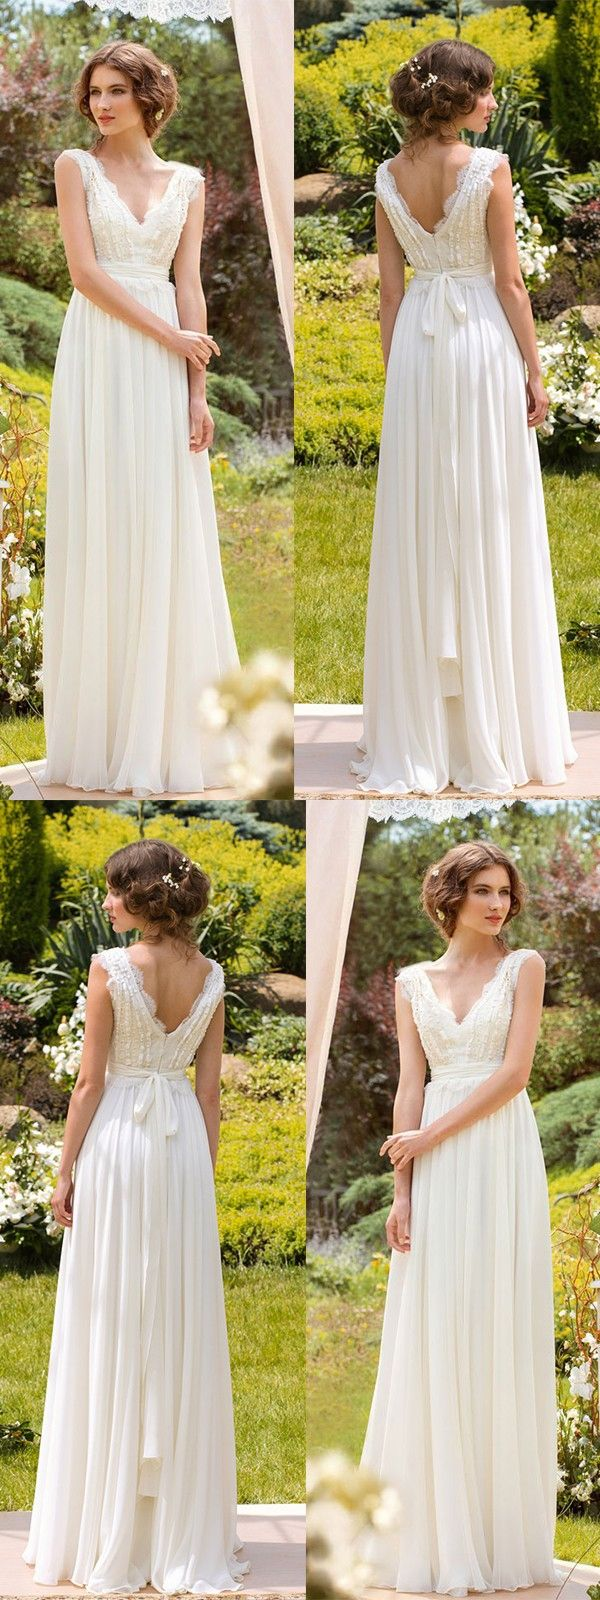 #WeddingDress #Gown #Dresses #Prom